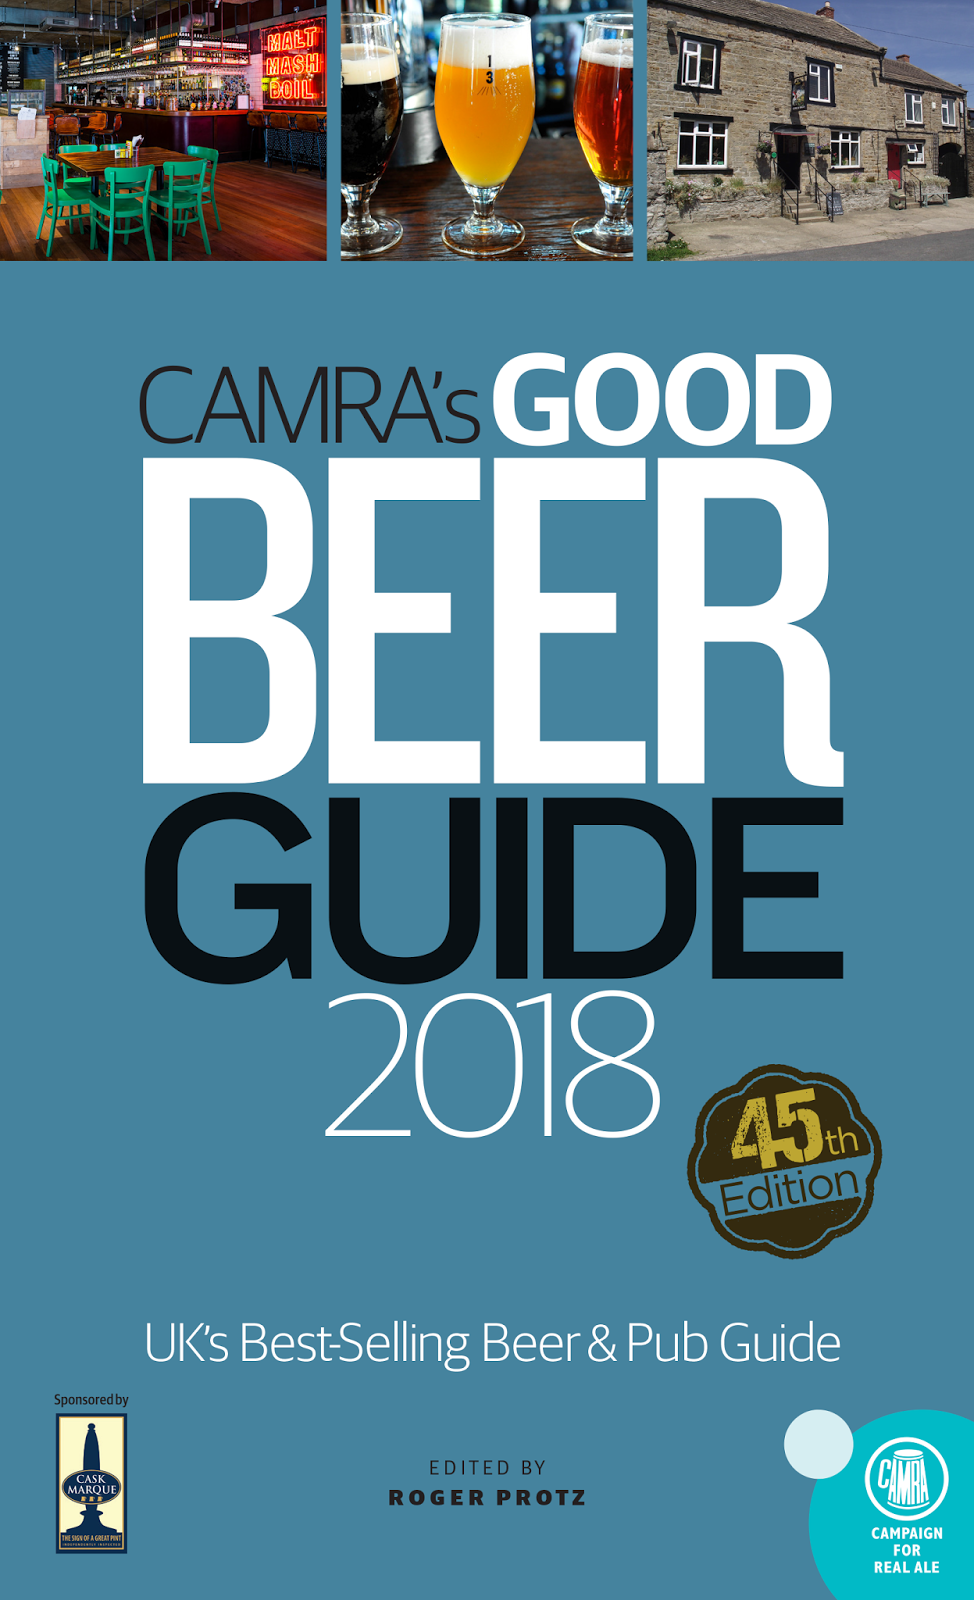 Paul's Beer & Travel Blog: The Good Beer Guide 2018 - from a ...